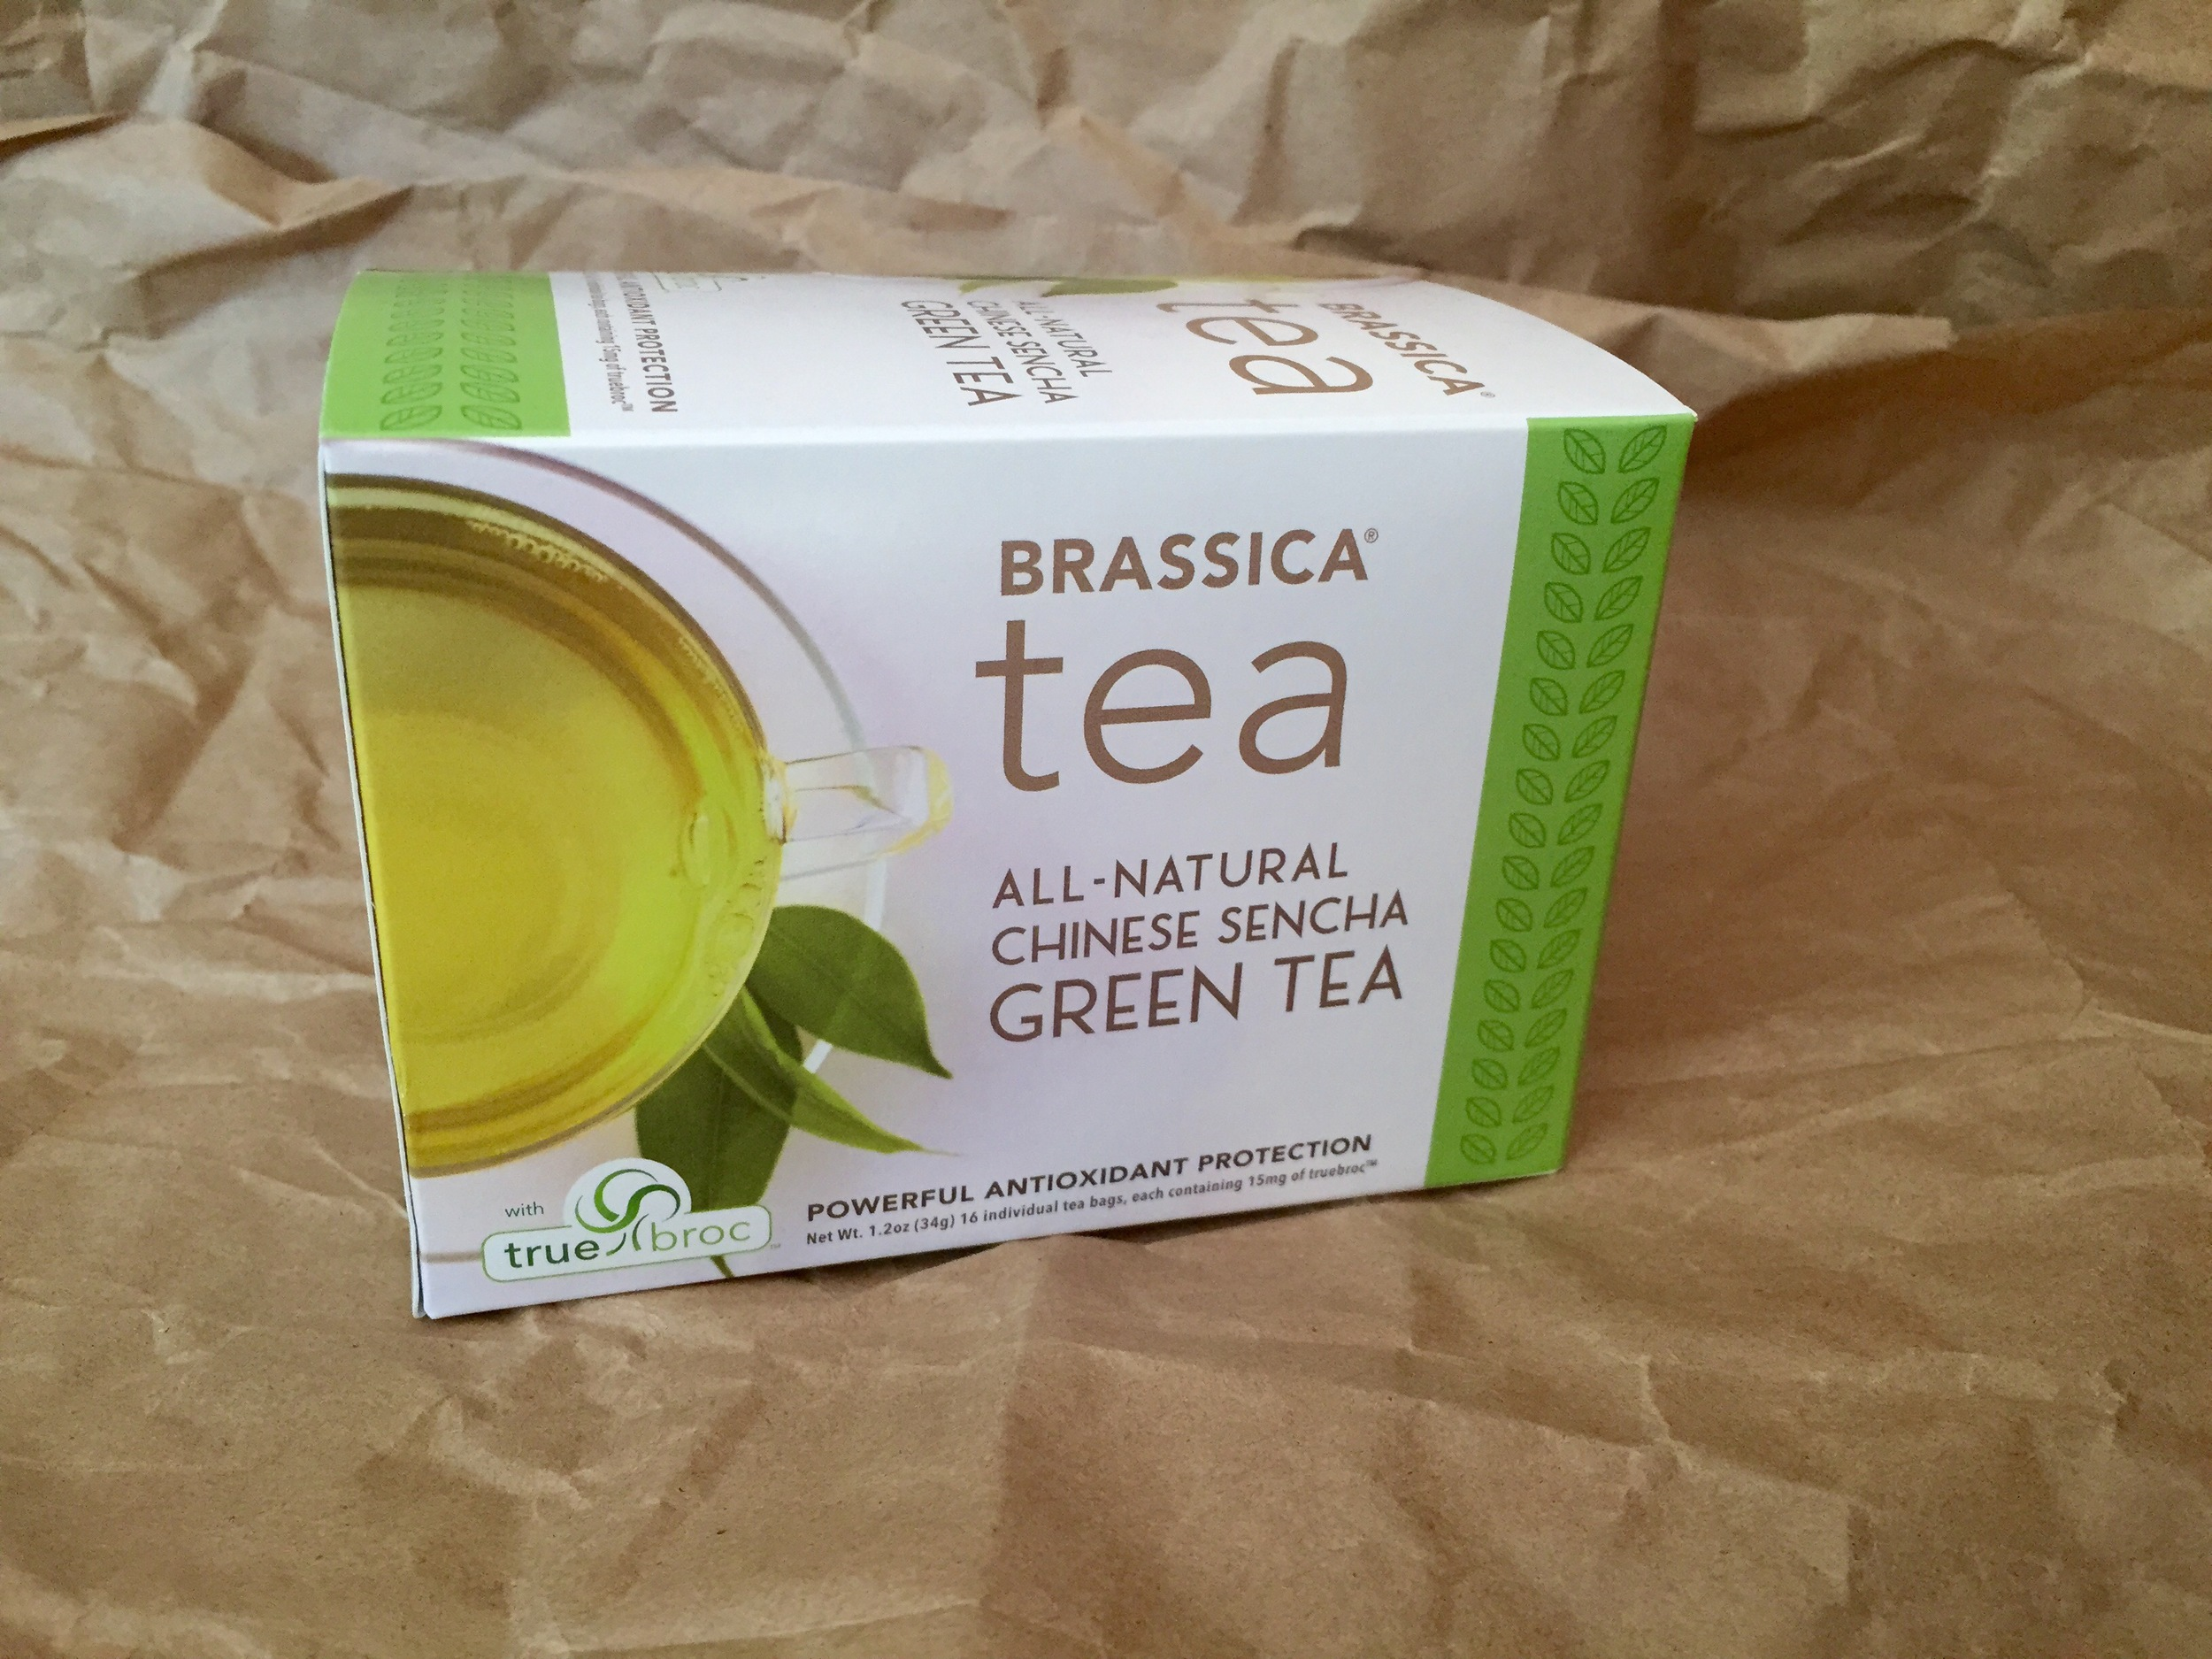 Brassica Green Tea with truebroc | 10 Healthy Travel Tips + Win a Box of BRASSICA TEA! | YES! Nutrition, LLC